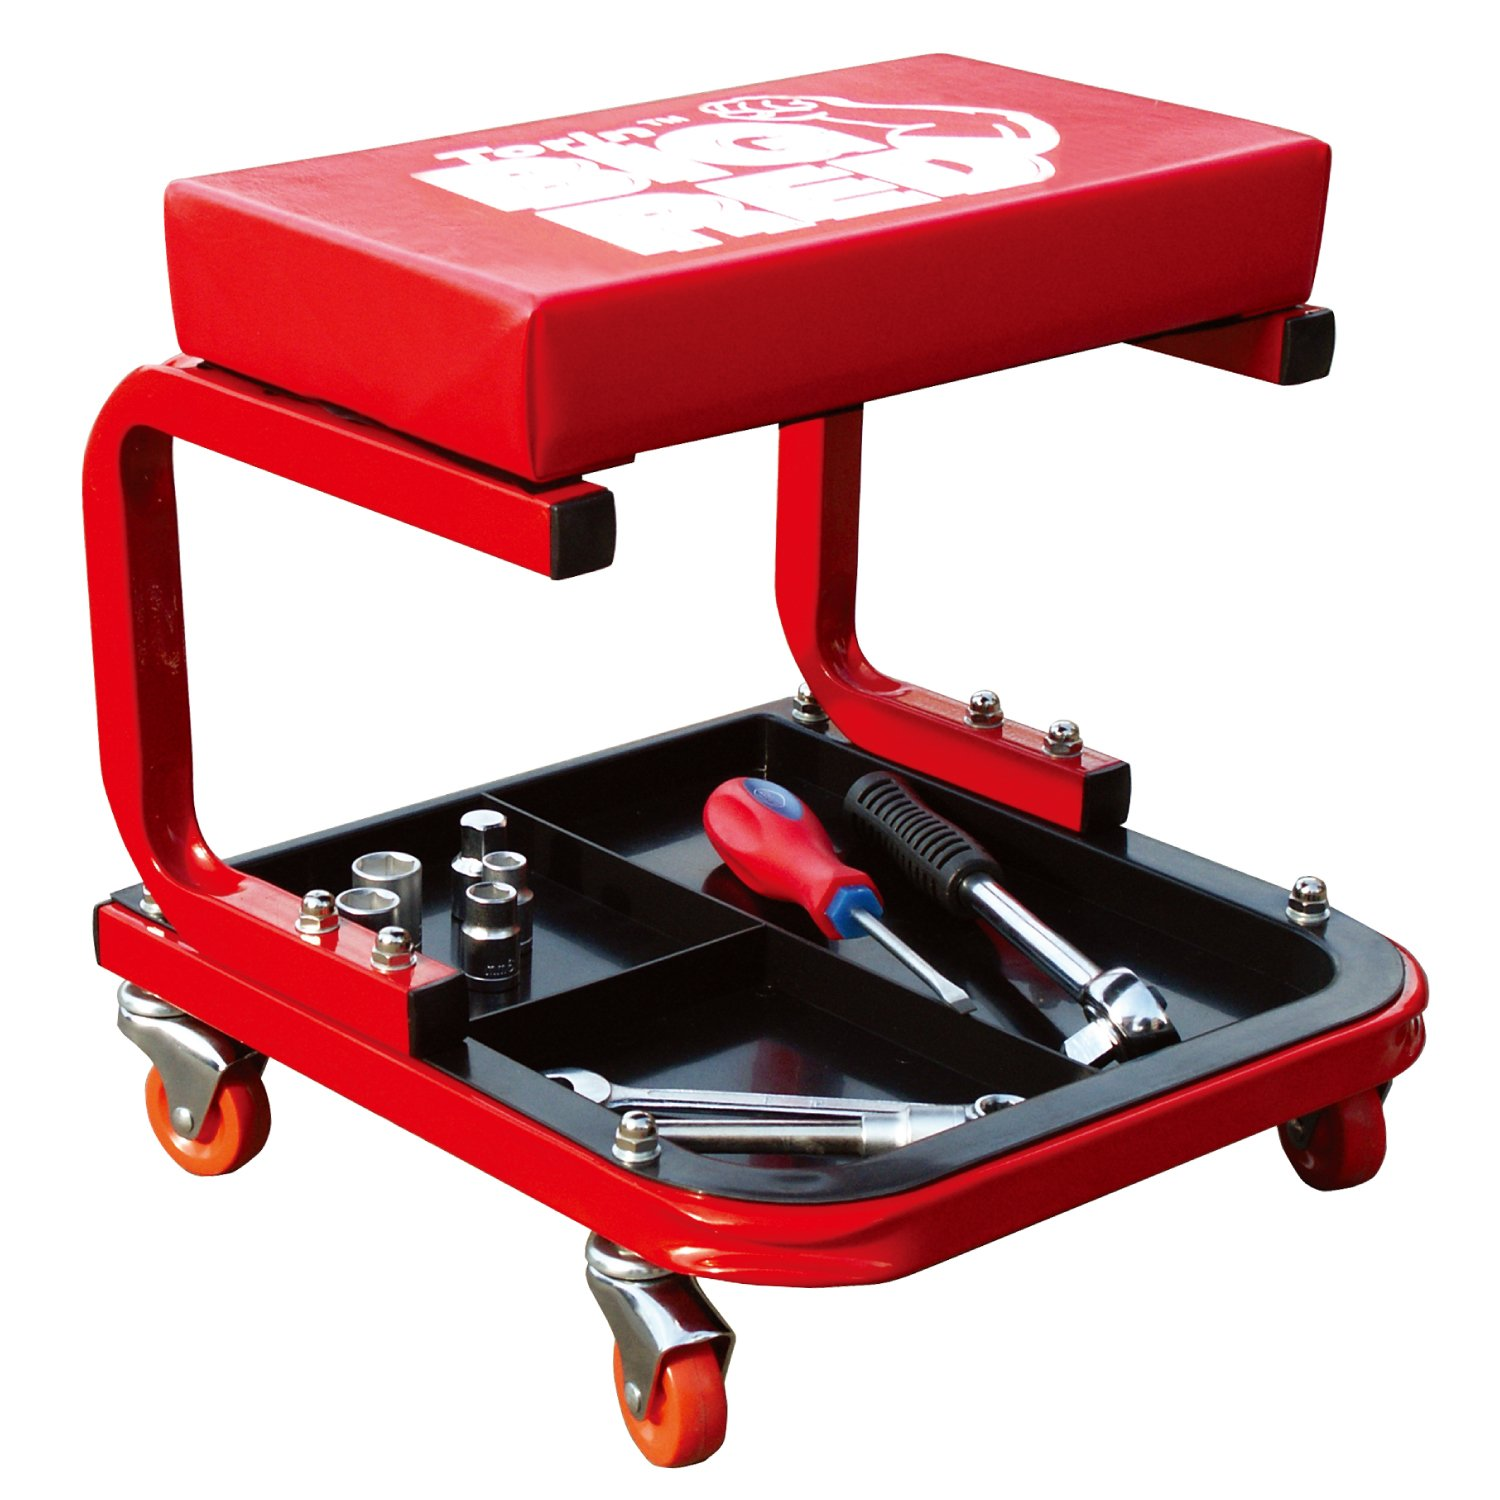 Torin Big Red Rolling Creeper Garage/Shop Seat: Padded Mechanic Stool with Tool Tray, Red TR6300